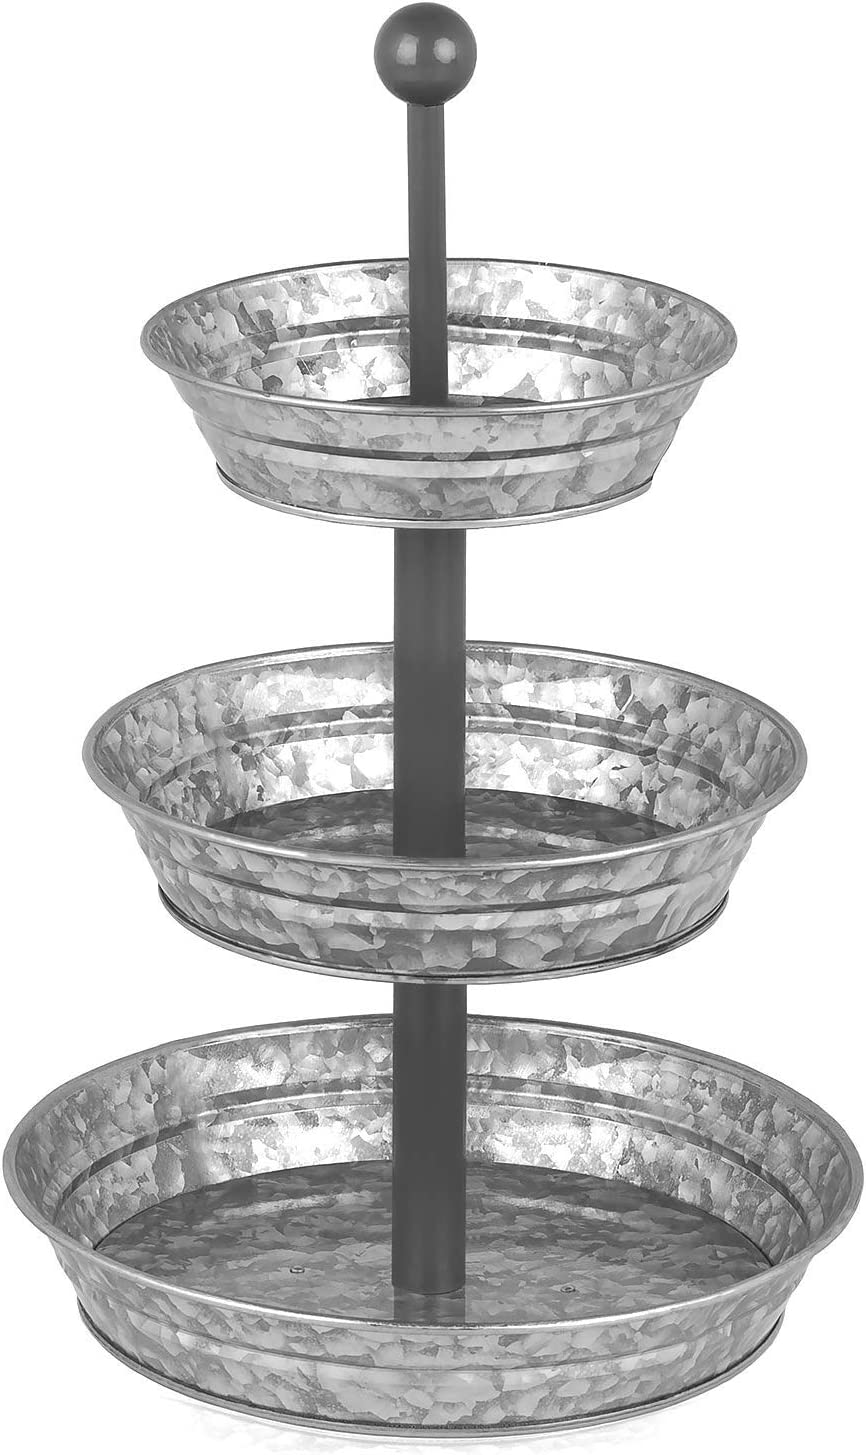 Amazon Com 3 Tier Serving Tray Galvanized Rustic Metal Stand Dessert Cupcake Fruit Party Three Tiered Platter Country Farmhouse Vintage Decor For The Kitchen Home Farm Outdoor By Hallops